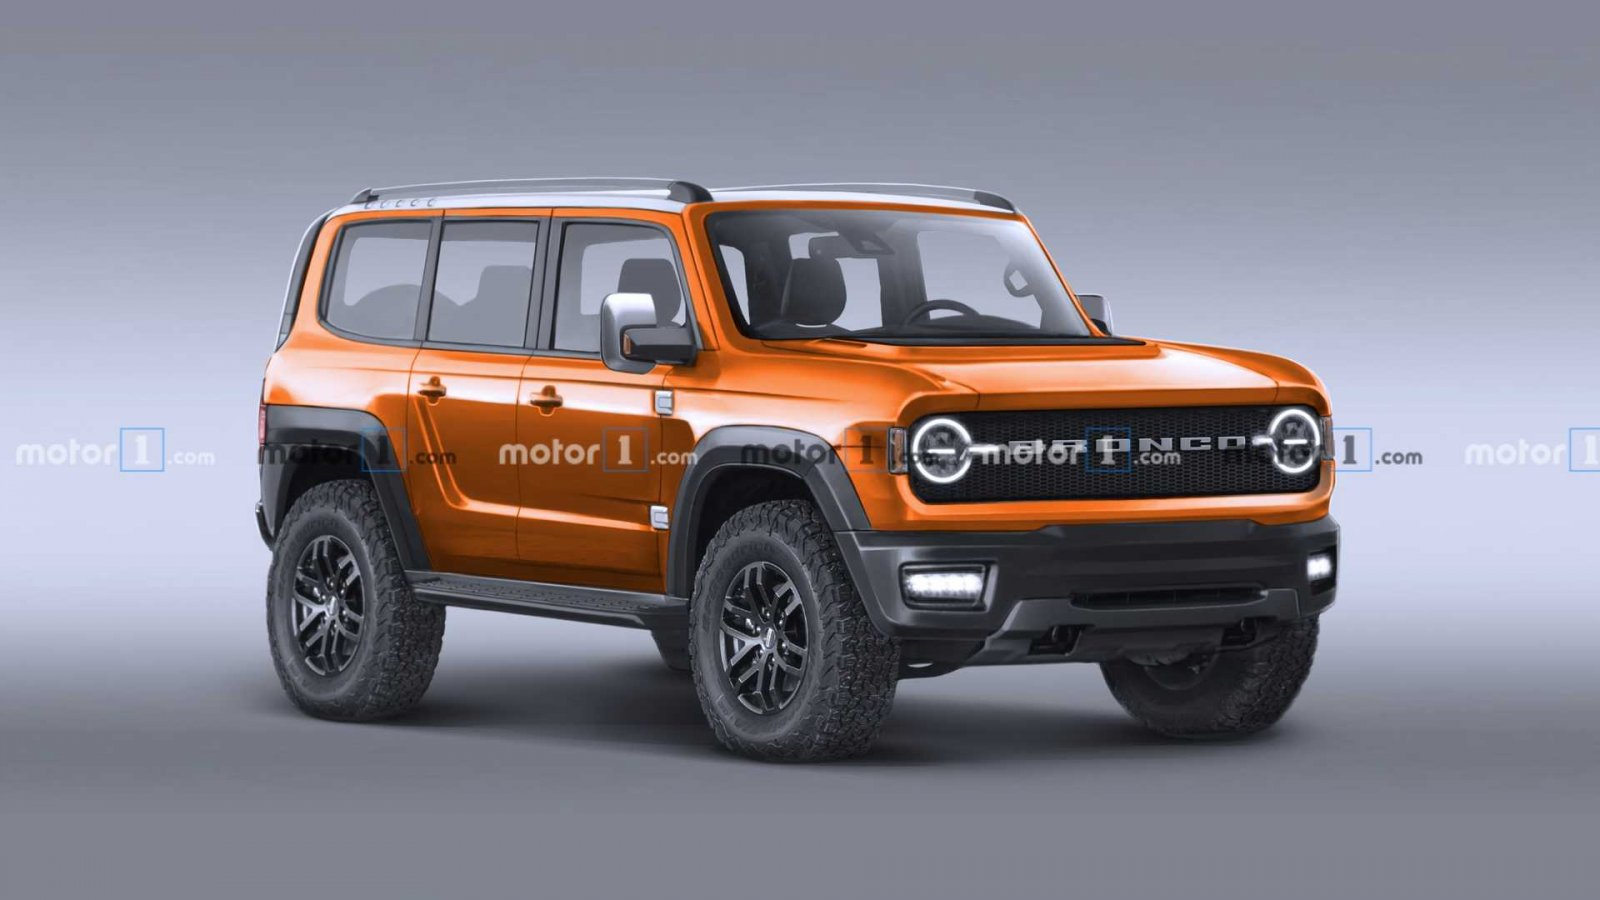 2021-ford-bronco-and-ford-bronco-sport-leaked-5-jpg.3960